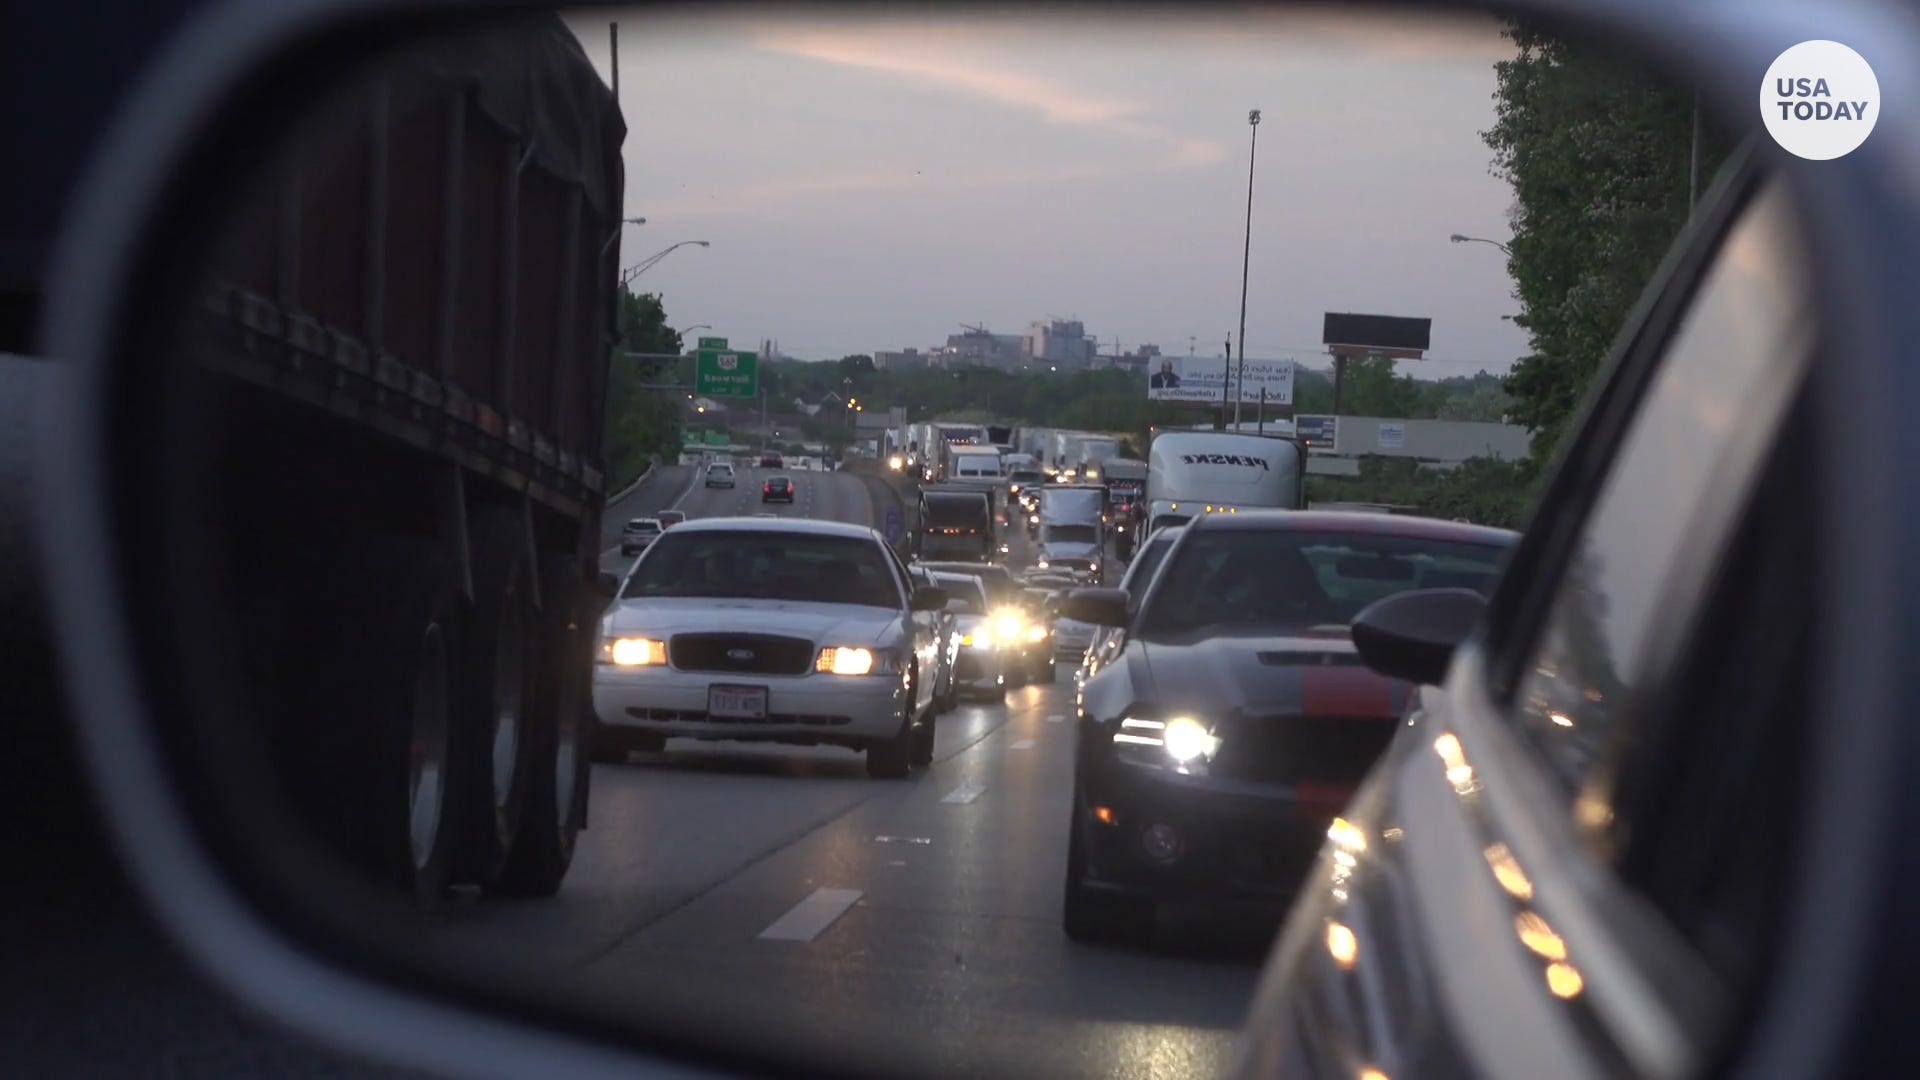 Avoid out-of-state travel this holiday season